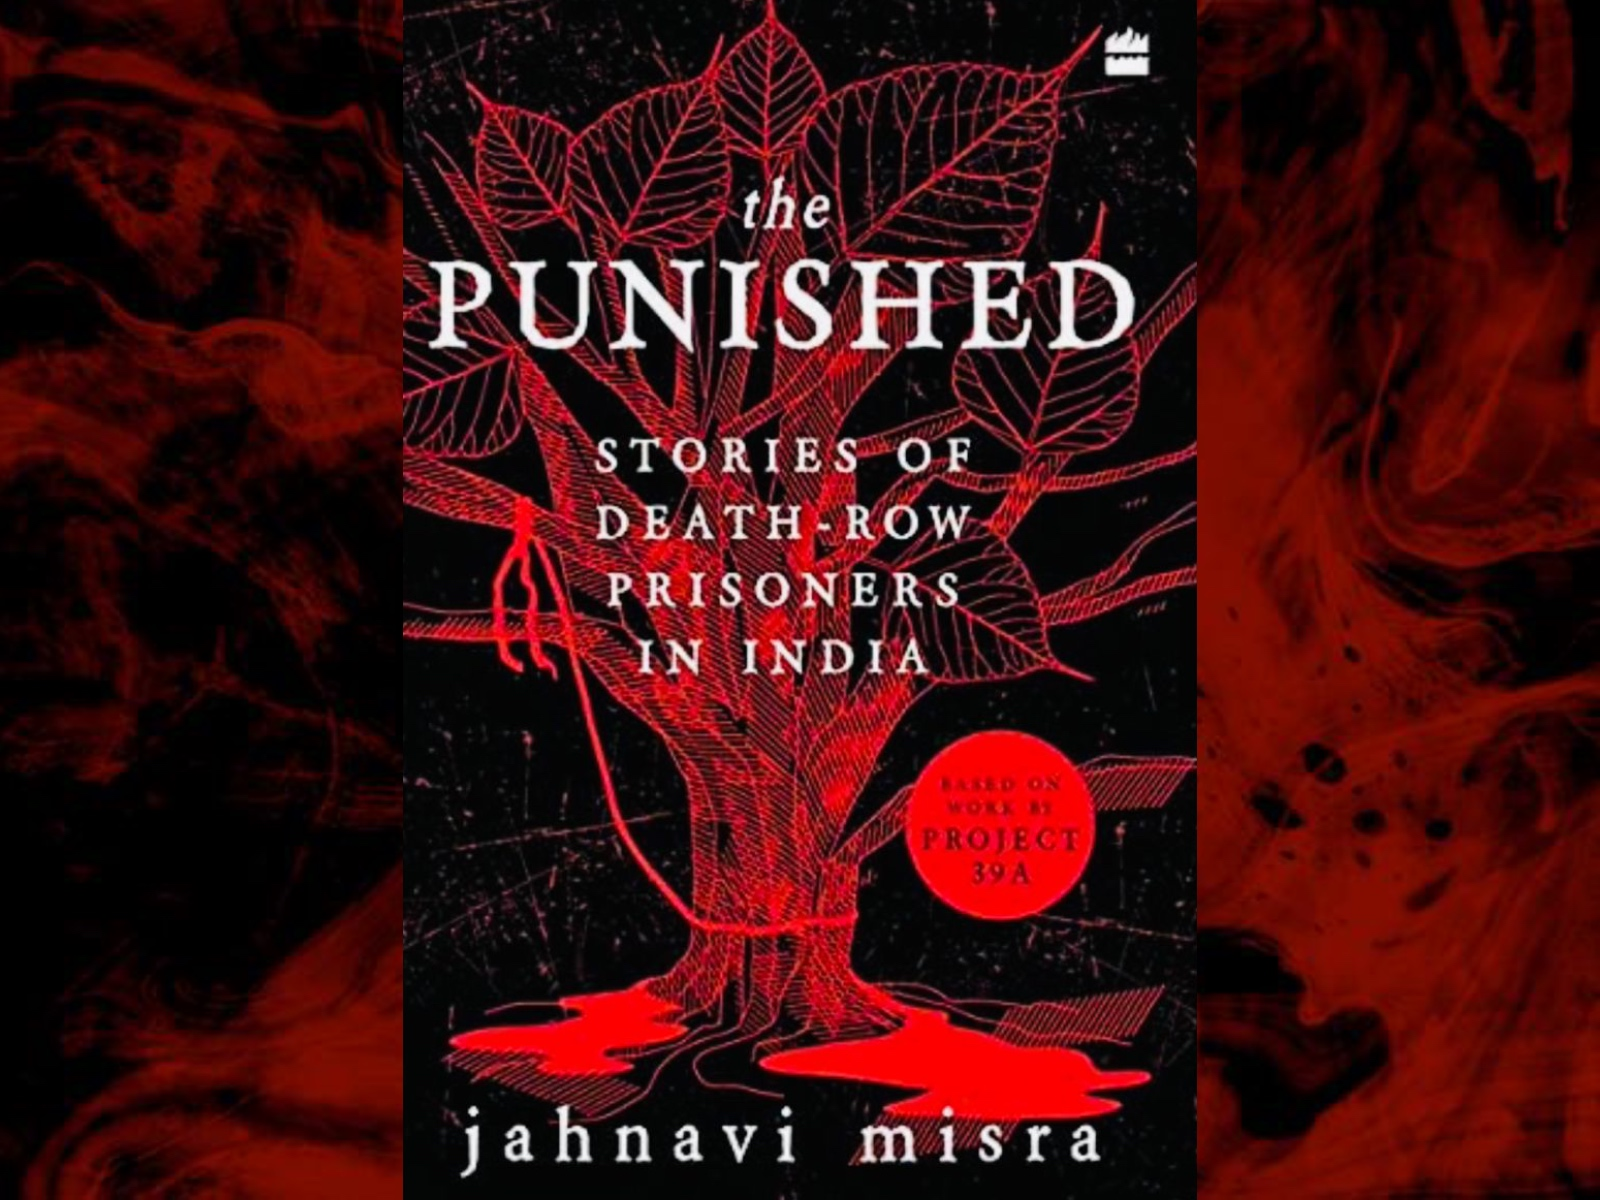 Book Review- The Punished: Stories of Death-Row Prisoners in India by Jahanvi Mishra